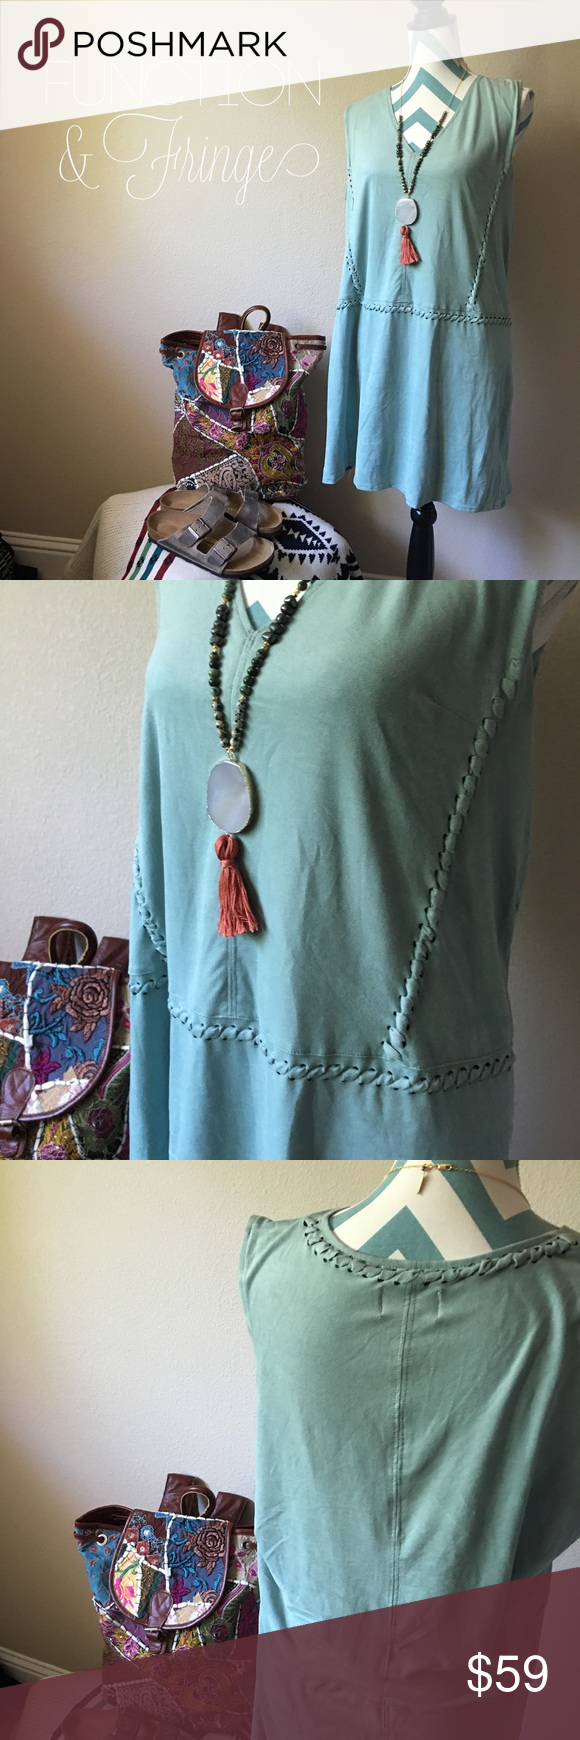 Soft suede like shift dress The tunic is super soft and feels like a faux suede. Fun stitch detailing throughout. Can be worn as a dress or tunic. 110140  All Function & Fringe clothing is carefully curated & all Function & Fringe jewelry is designed and made with ❤️ in California!   ❤I have over 300 new with tag Free People & Function& Fringe items for sale! I love to offer bundle discounts!  ❤No trades. love the item but not the price? Submit an offer! Function & Fringe Dresses Mini